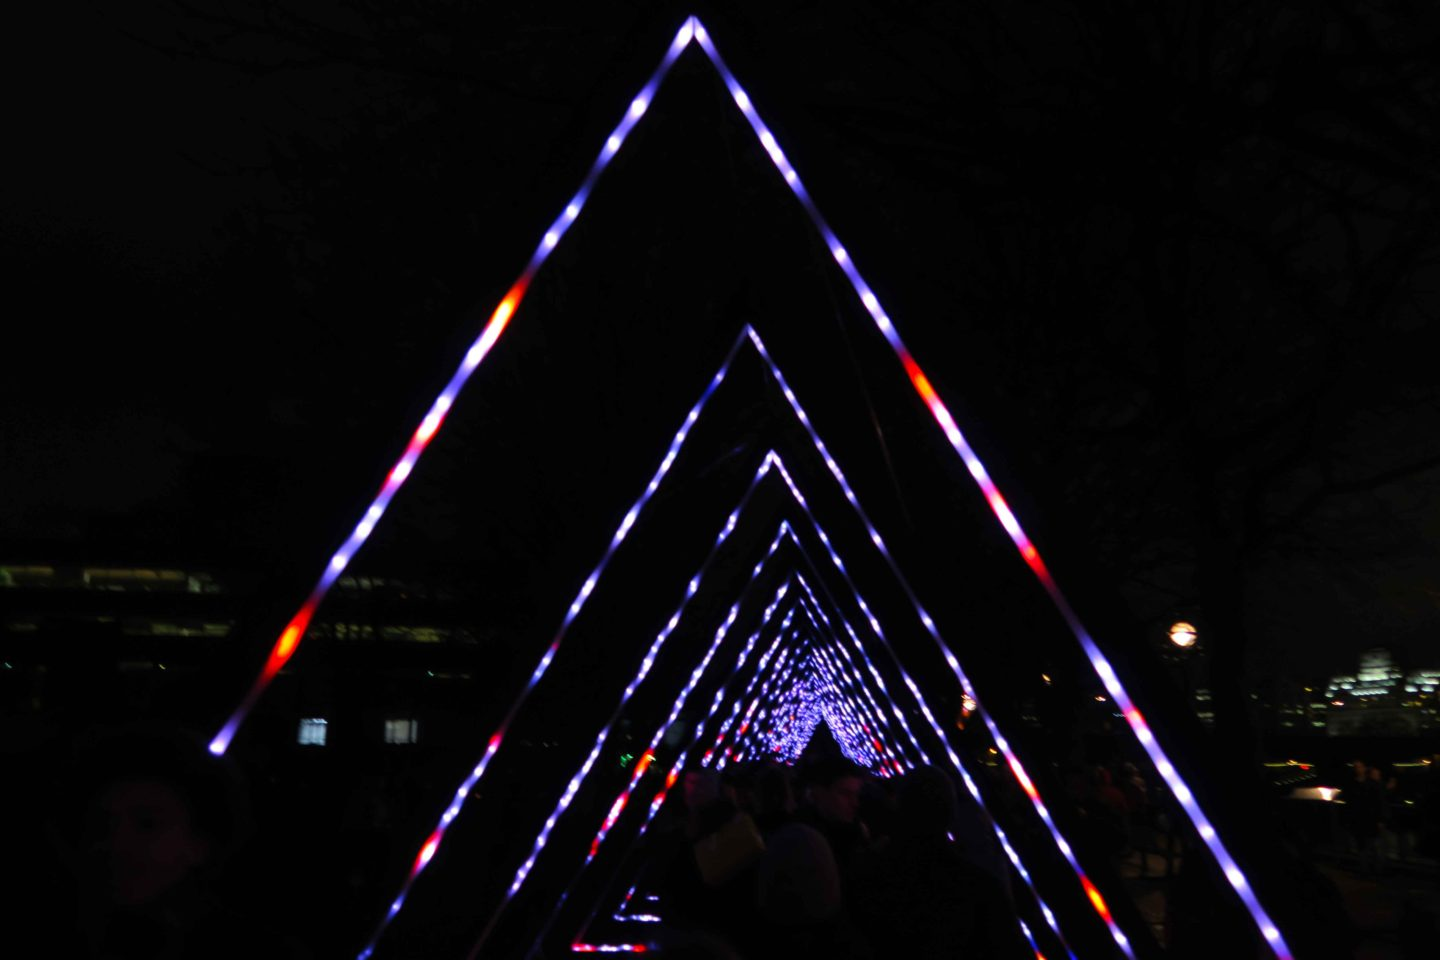 lumiere london triangle lights